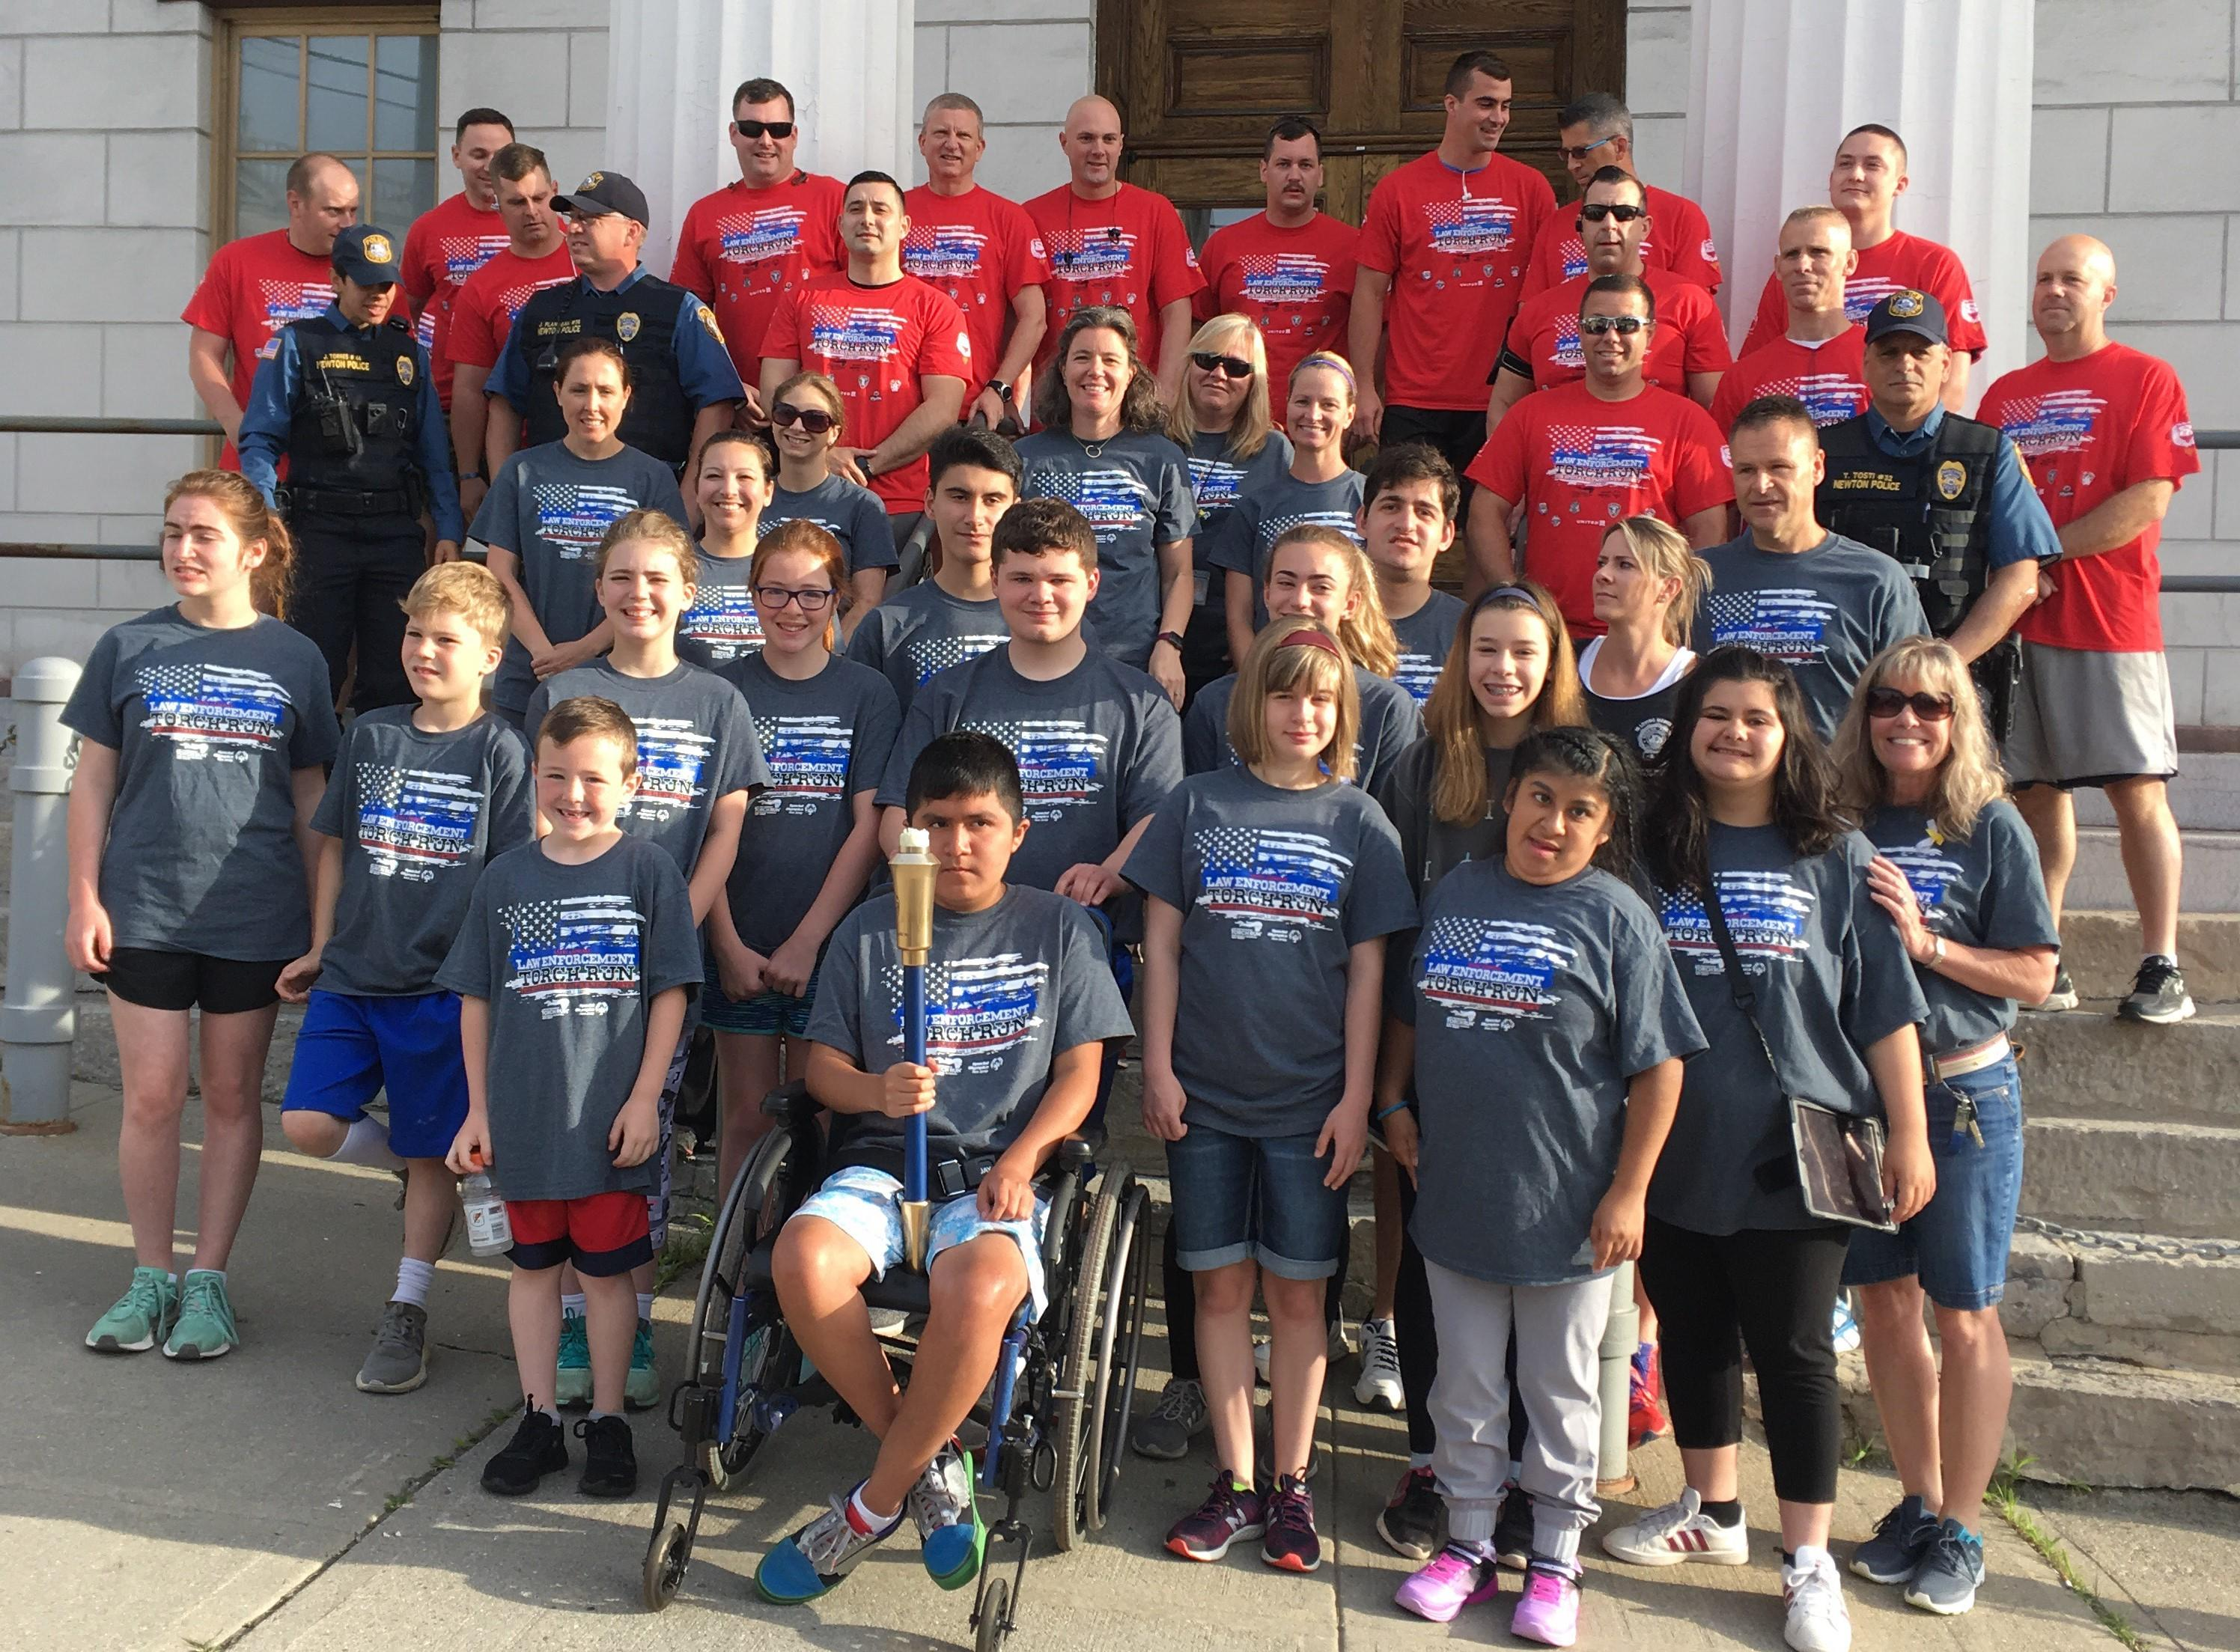 36th Annual Law Enforcement Torch Run for Special Olympics